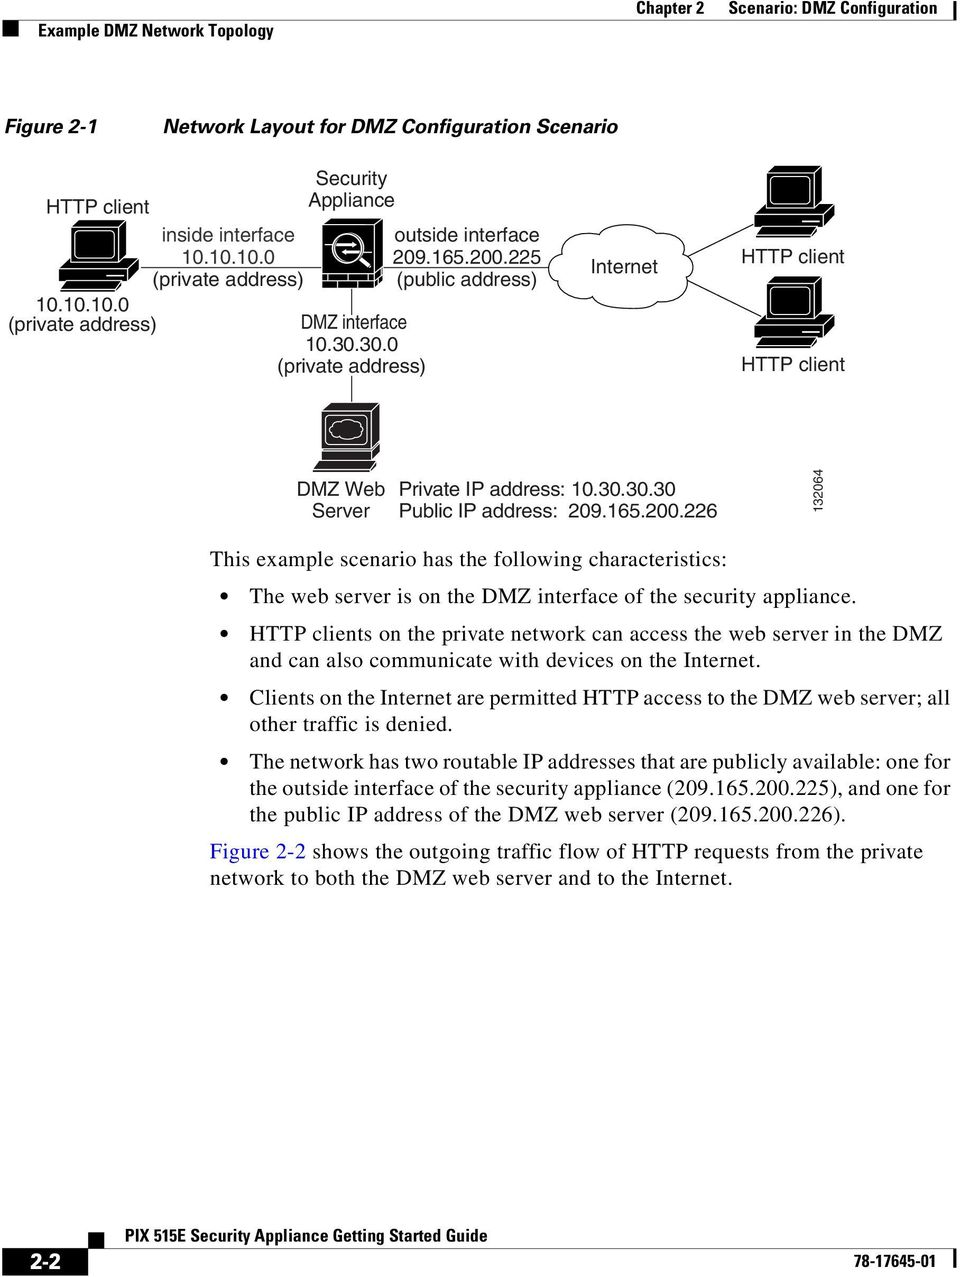 Cisco PIX 515E Security Appliance Getting Started Guide - PDF